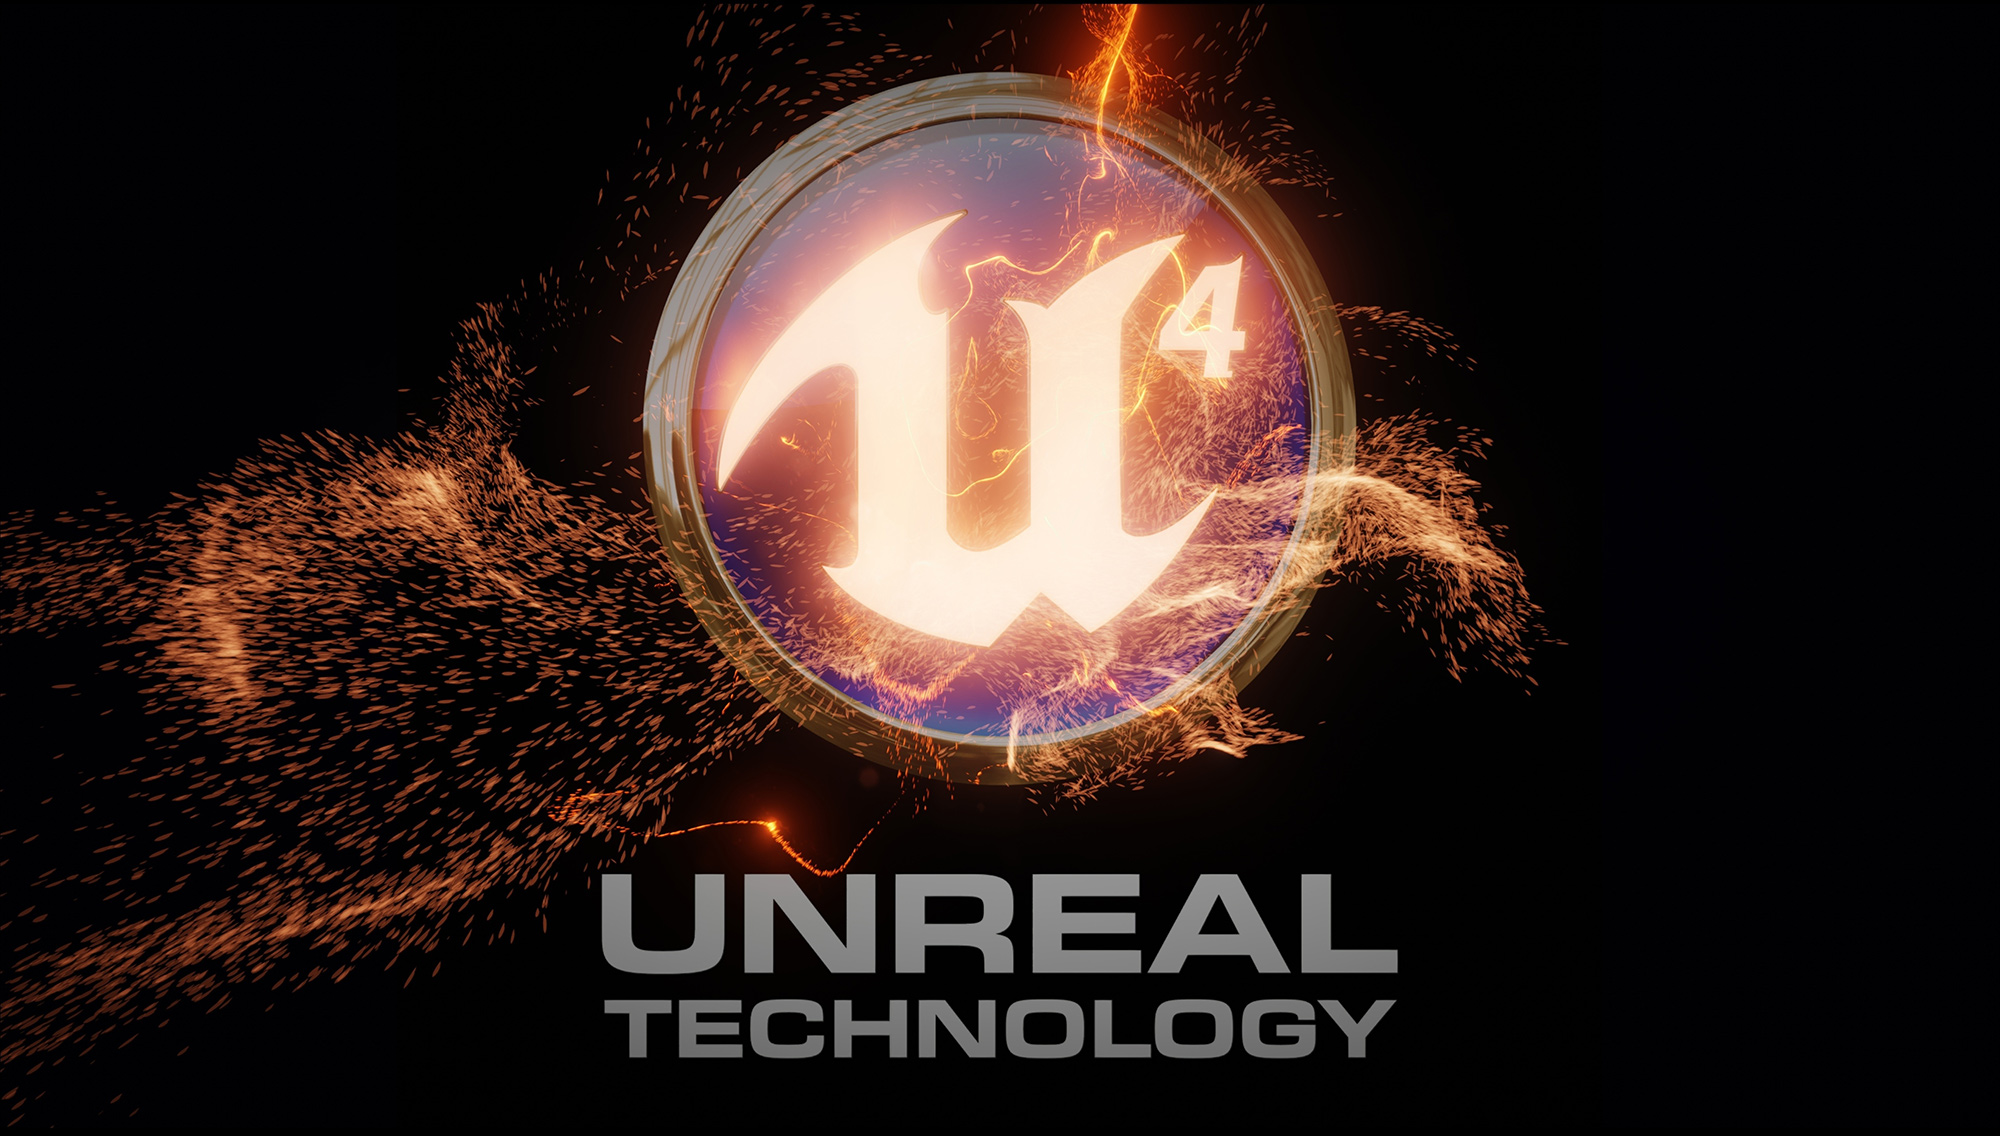 Epic Announces That Unreal Engine 4 Is Now Free